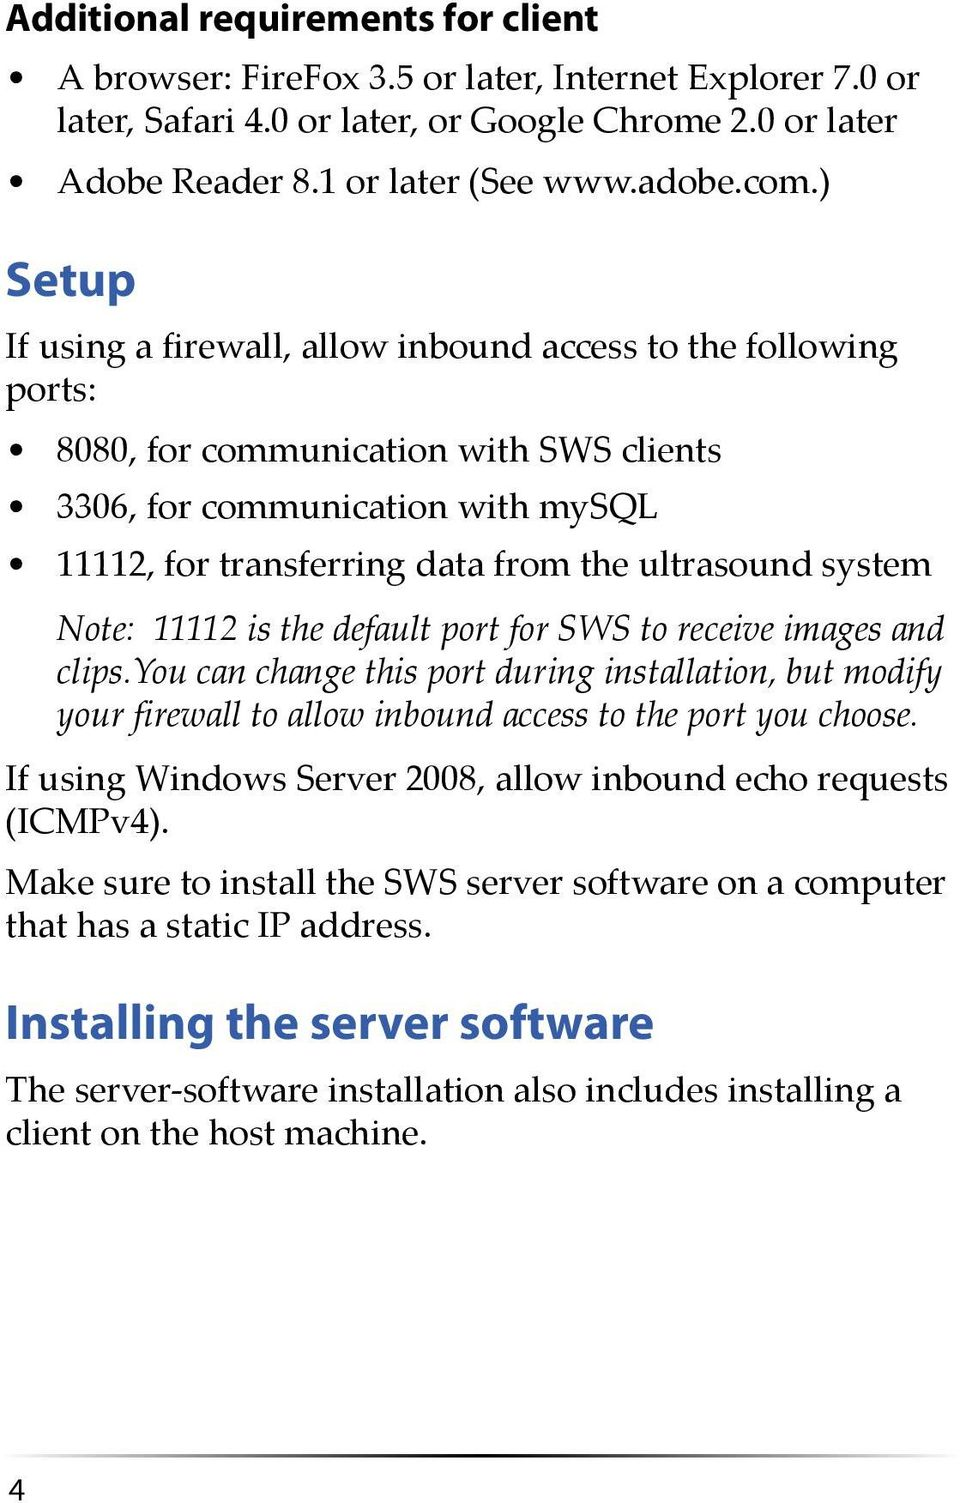 system Note: 11112 is the default port for SWS to receive images and clips.you can change this port during installation, but modify your firewall to allow inbound access to the port you choose.